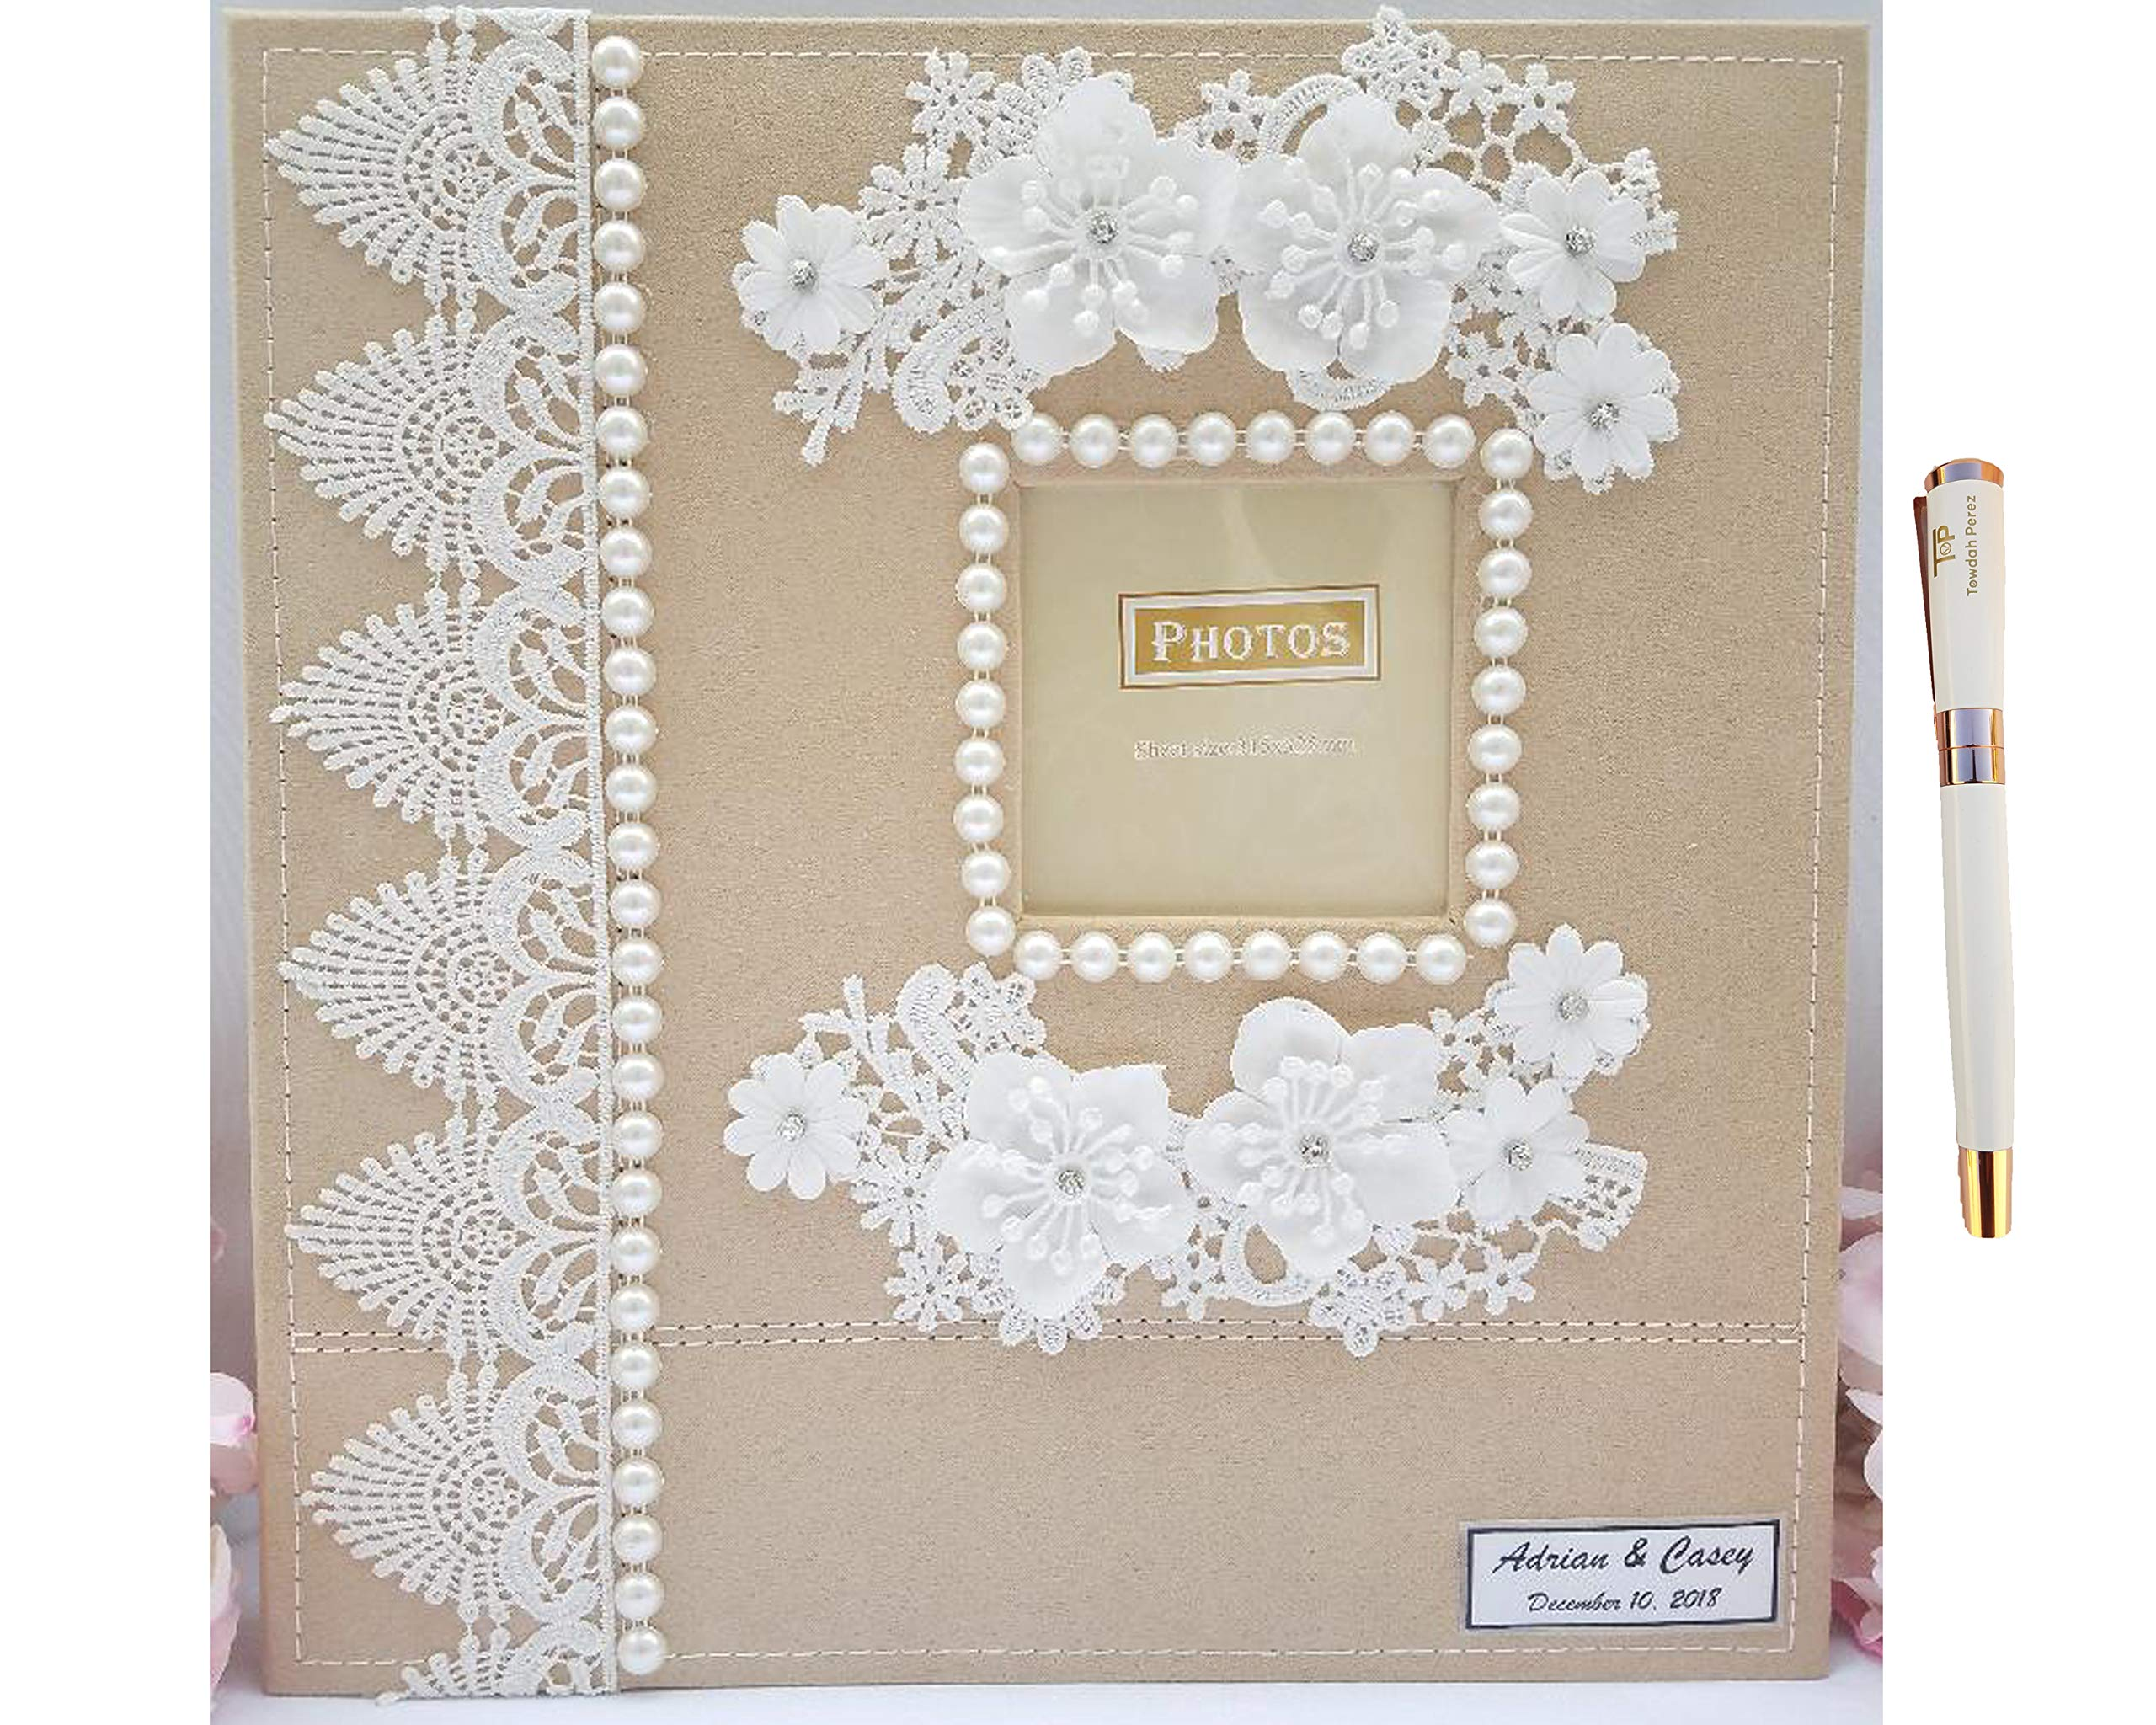 Towdah Perez Pearls Flower lace self Stick Wedding Album 80 Pages. Hand-Decorated Fabric Cover Album; 3x5, 4x6, 5x7, 8x10 Photos with Gift Box, Luxury White/Gold Pen. Customizable and personalizable